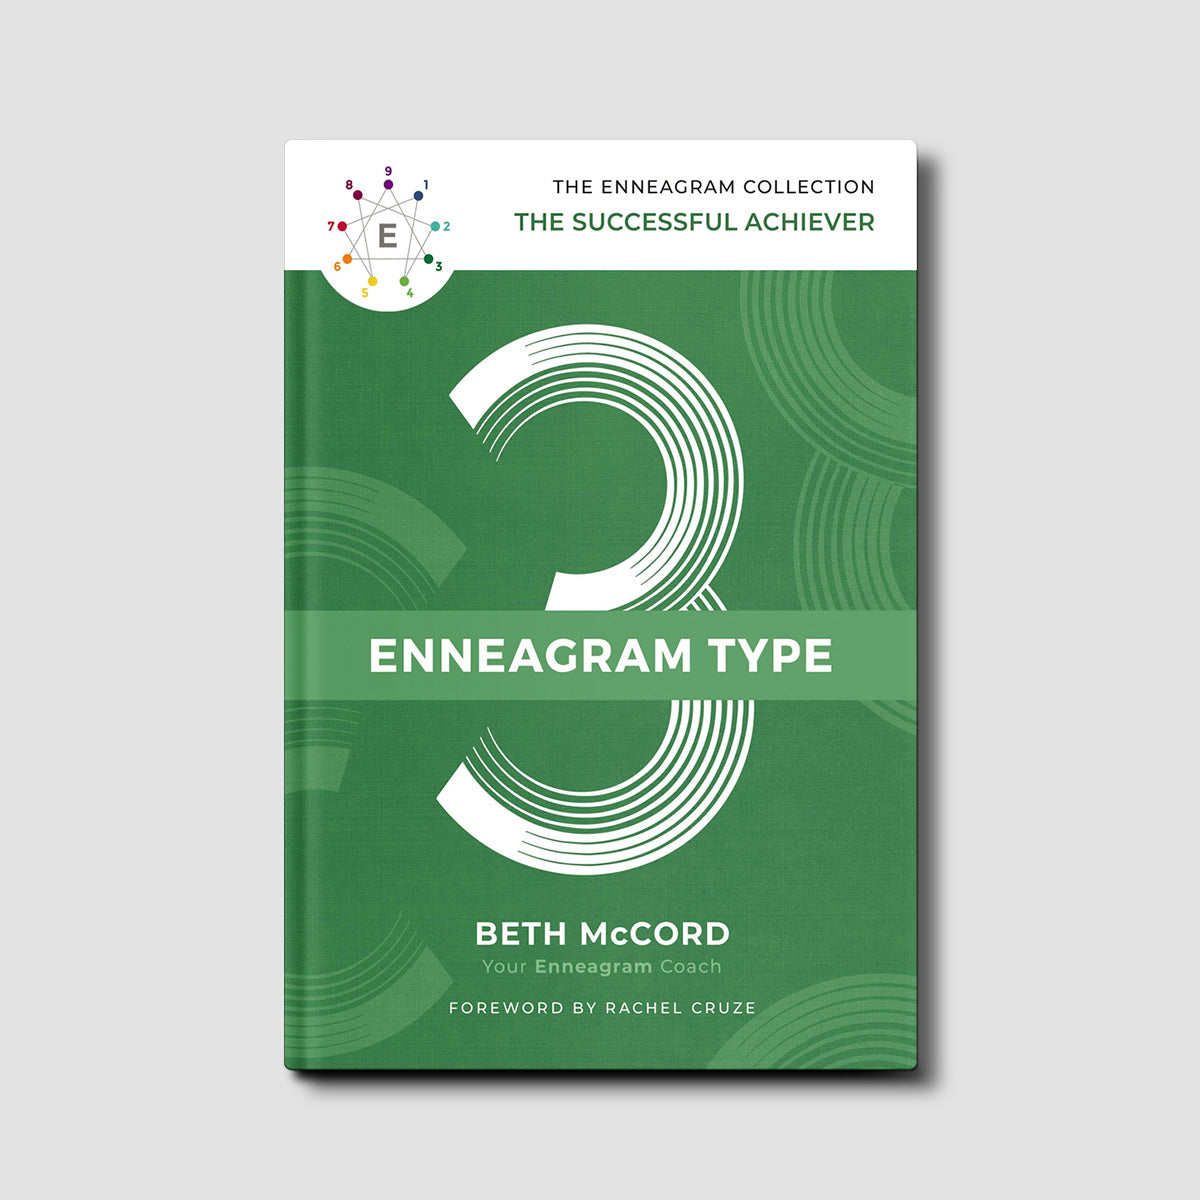 The Enneagram Type 3: The Successful Achiever